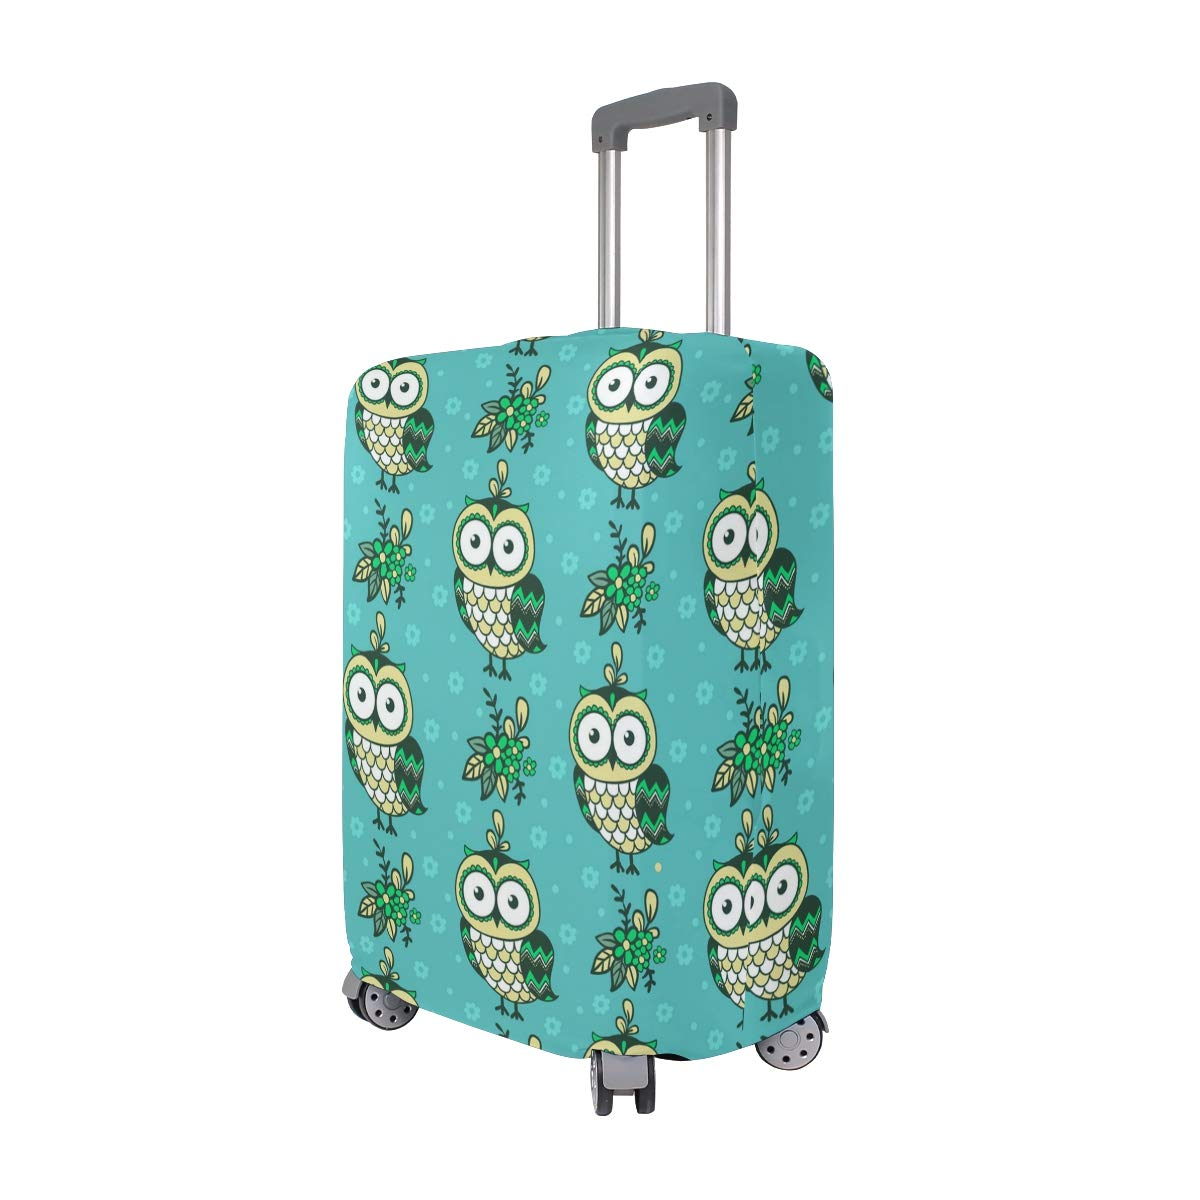 Cute Autumn Owl Decorations Travel Luggage Protector Case Protective Suitcase Cover Elastic Luggage Protector Case Protector,Four Sizes Available